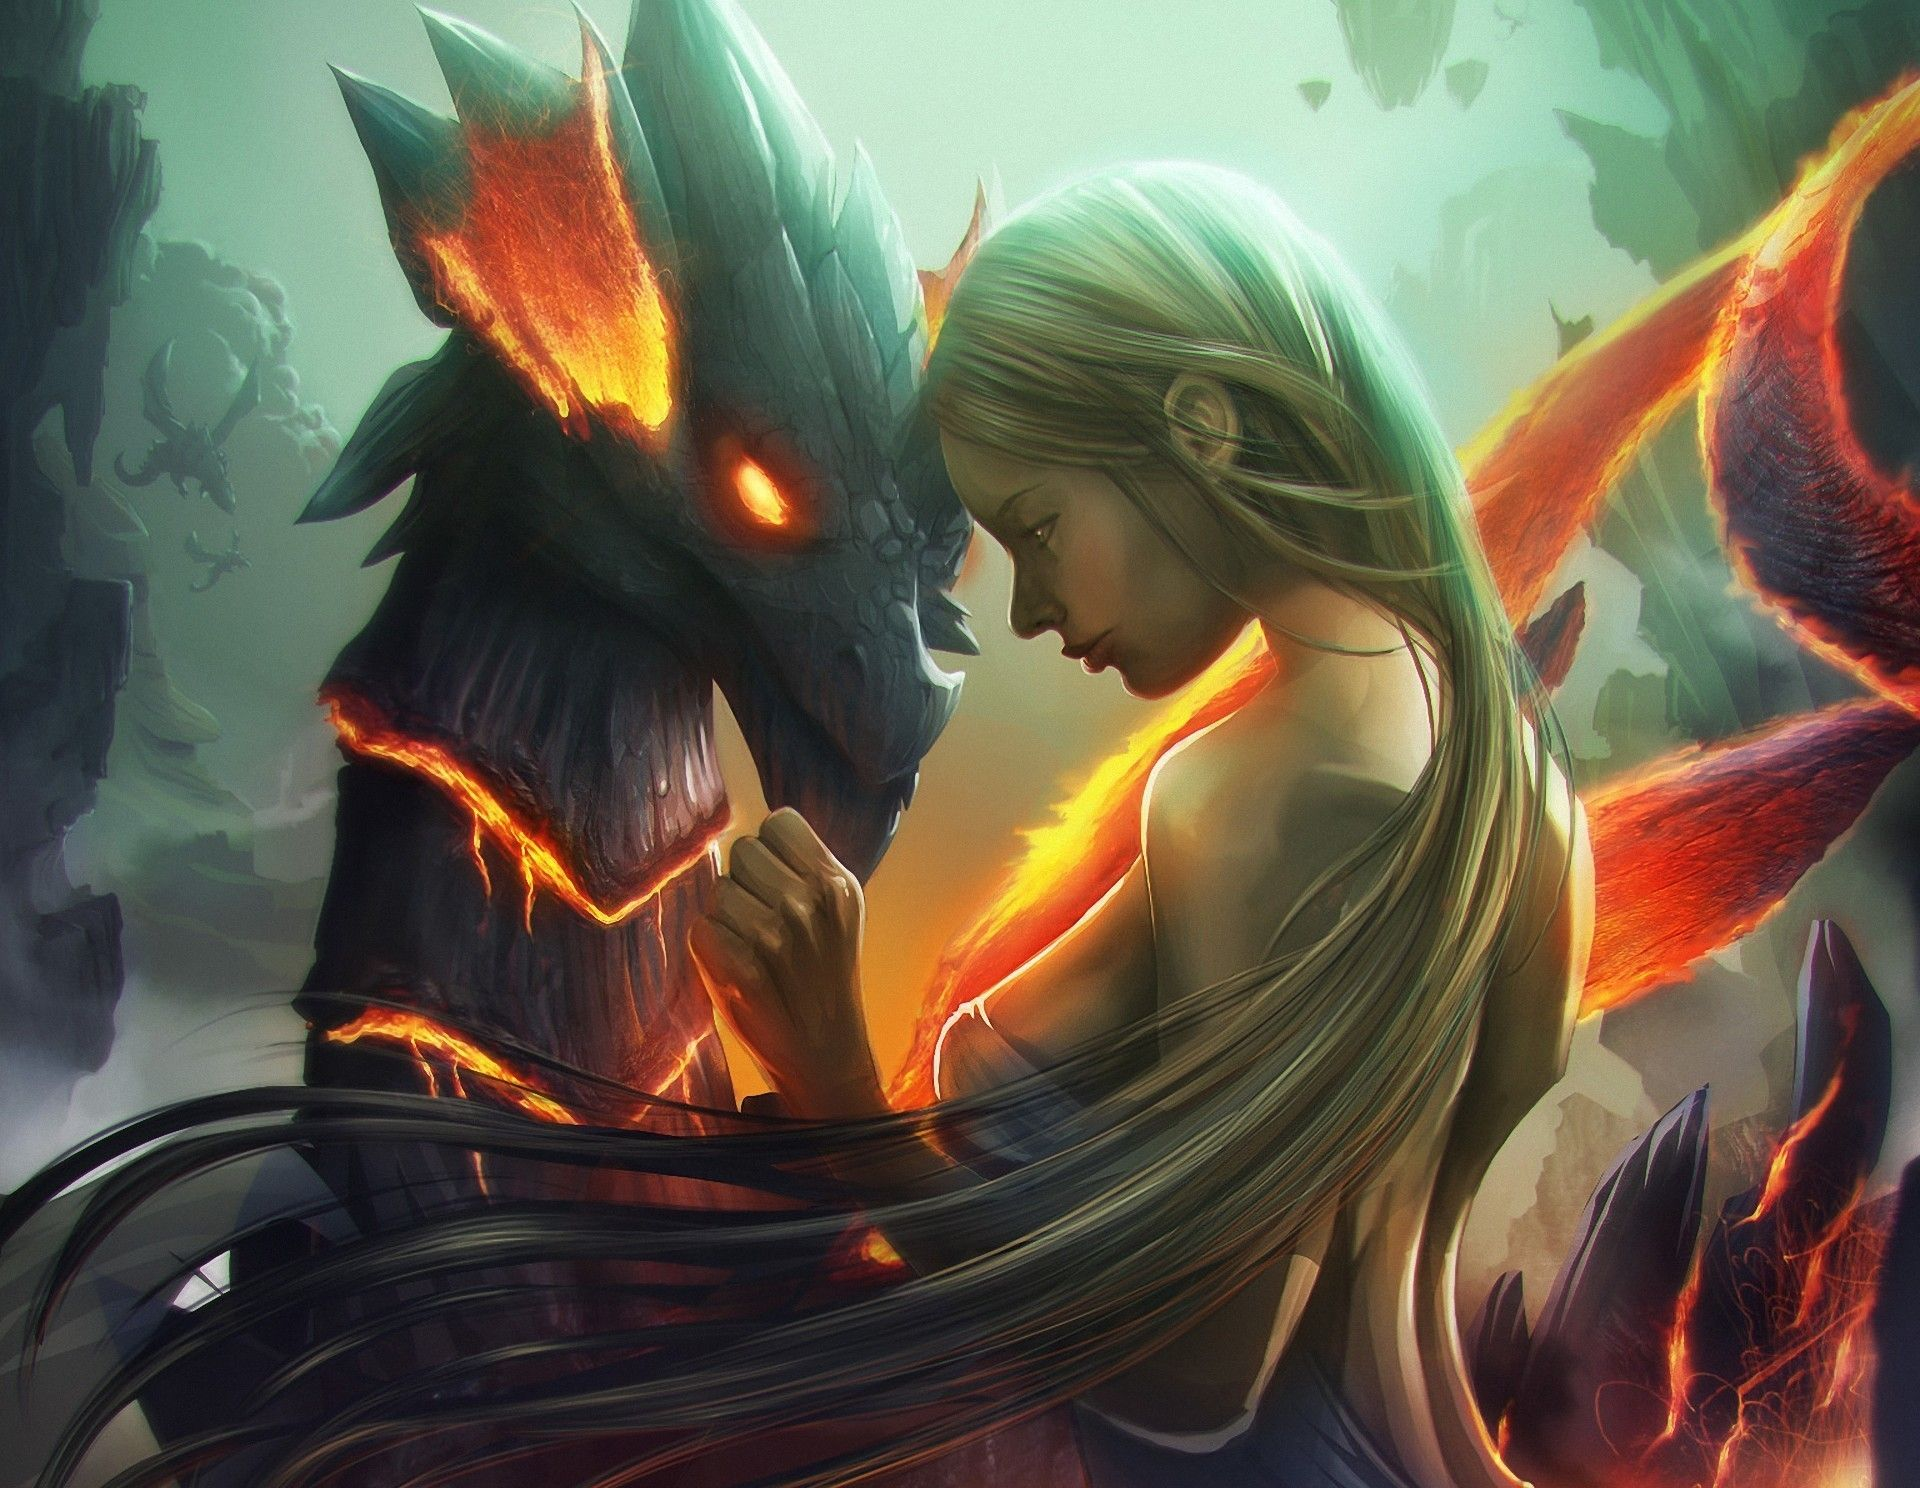 1920x1488 Long-haired girl and the dragon wallpapers and images - wallpapers ...